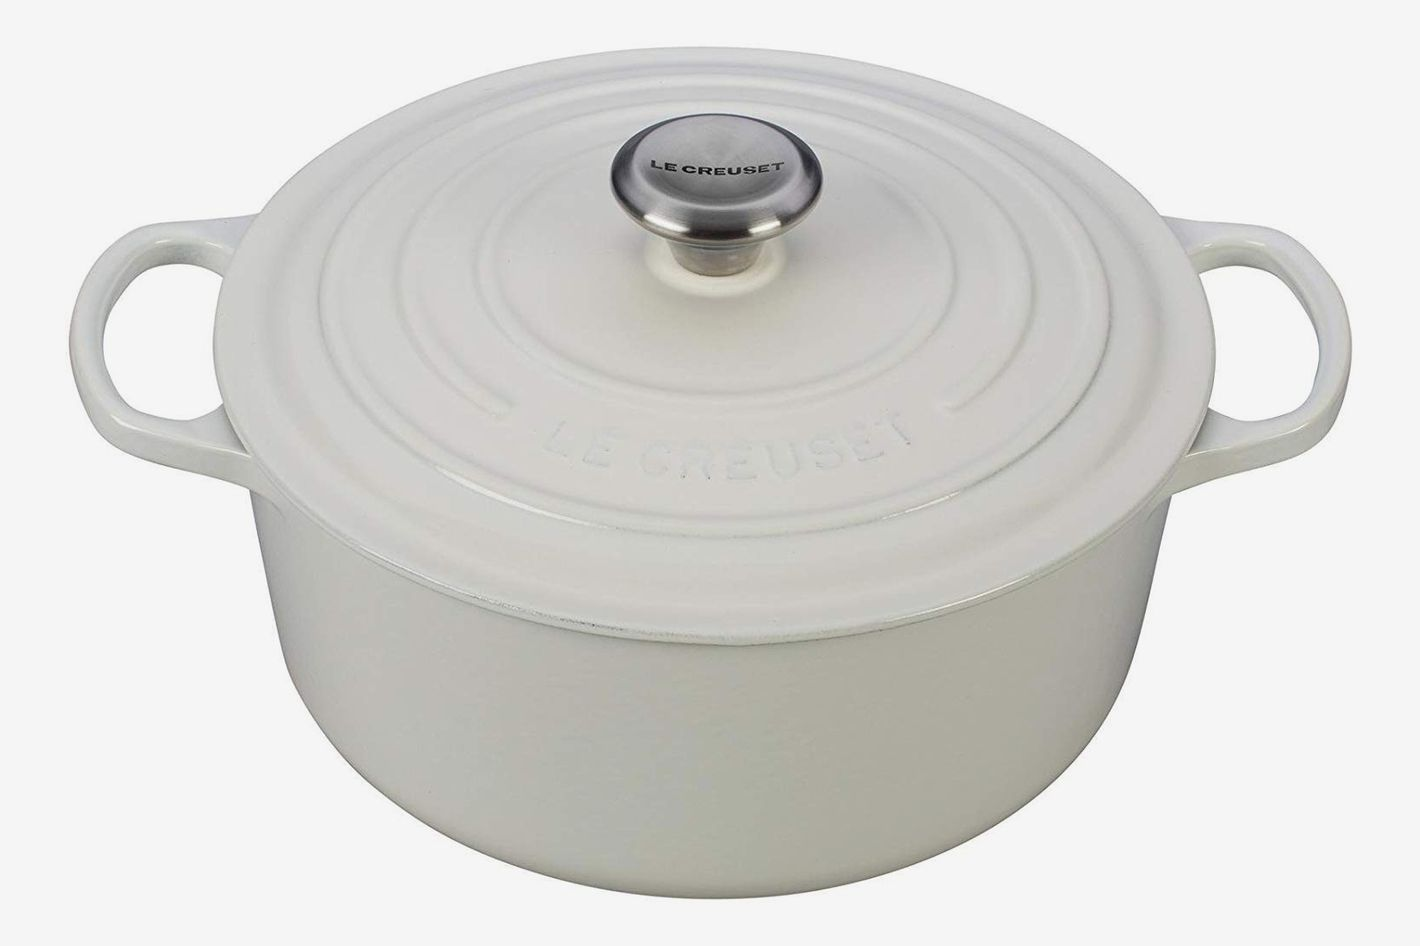 Le Creuset Signature Enameled Cast-Iron 5 1/2–Quart Round French (Dutch) Oven, White